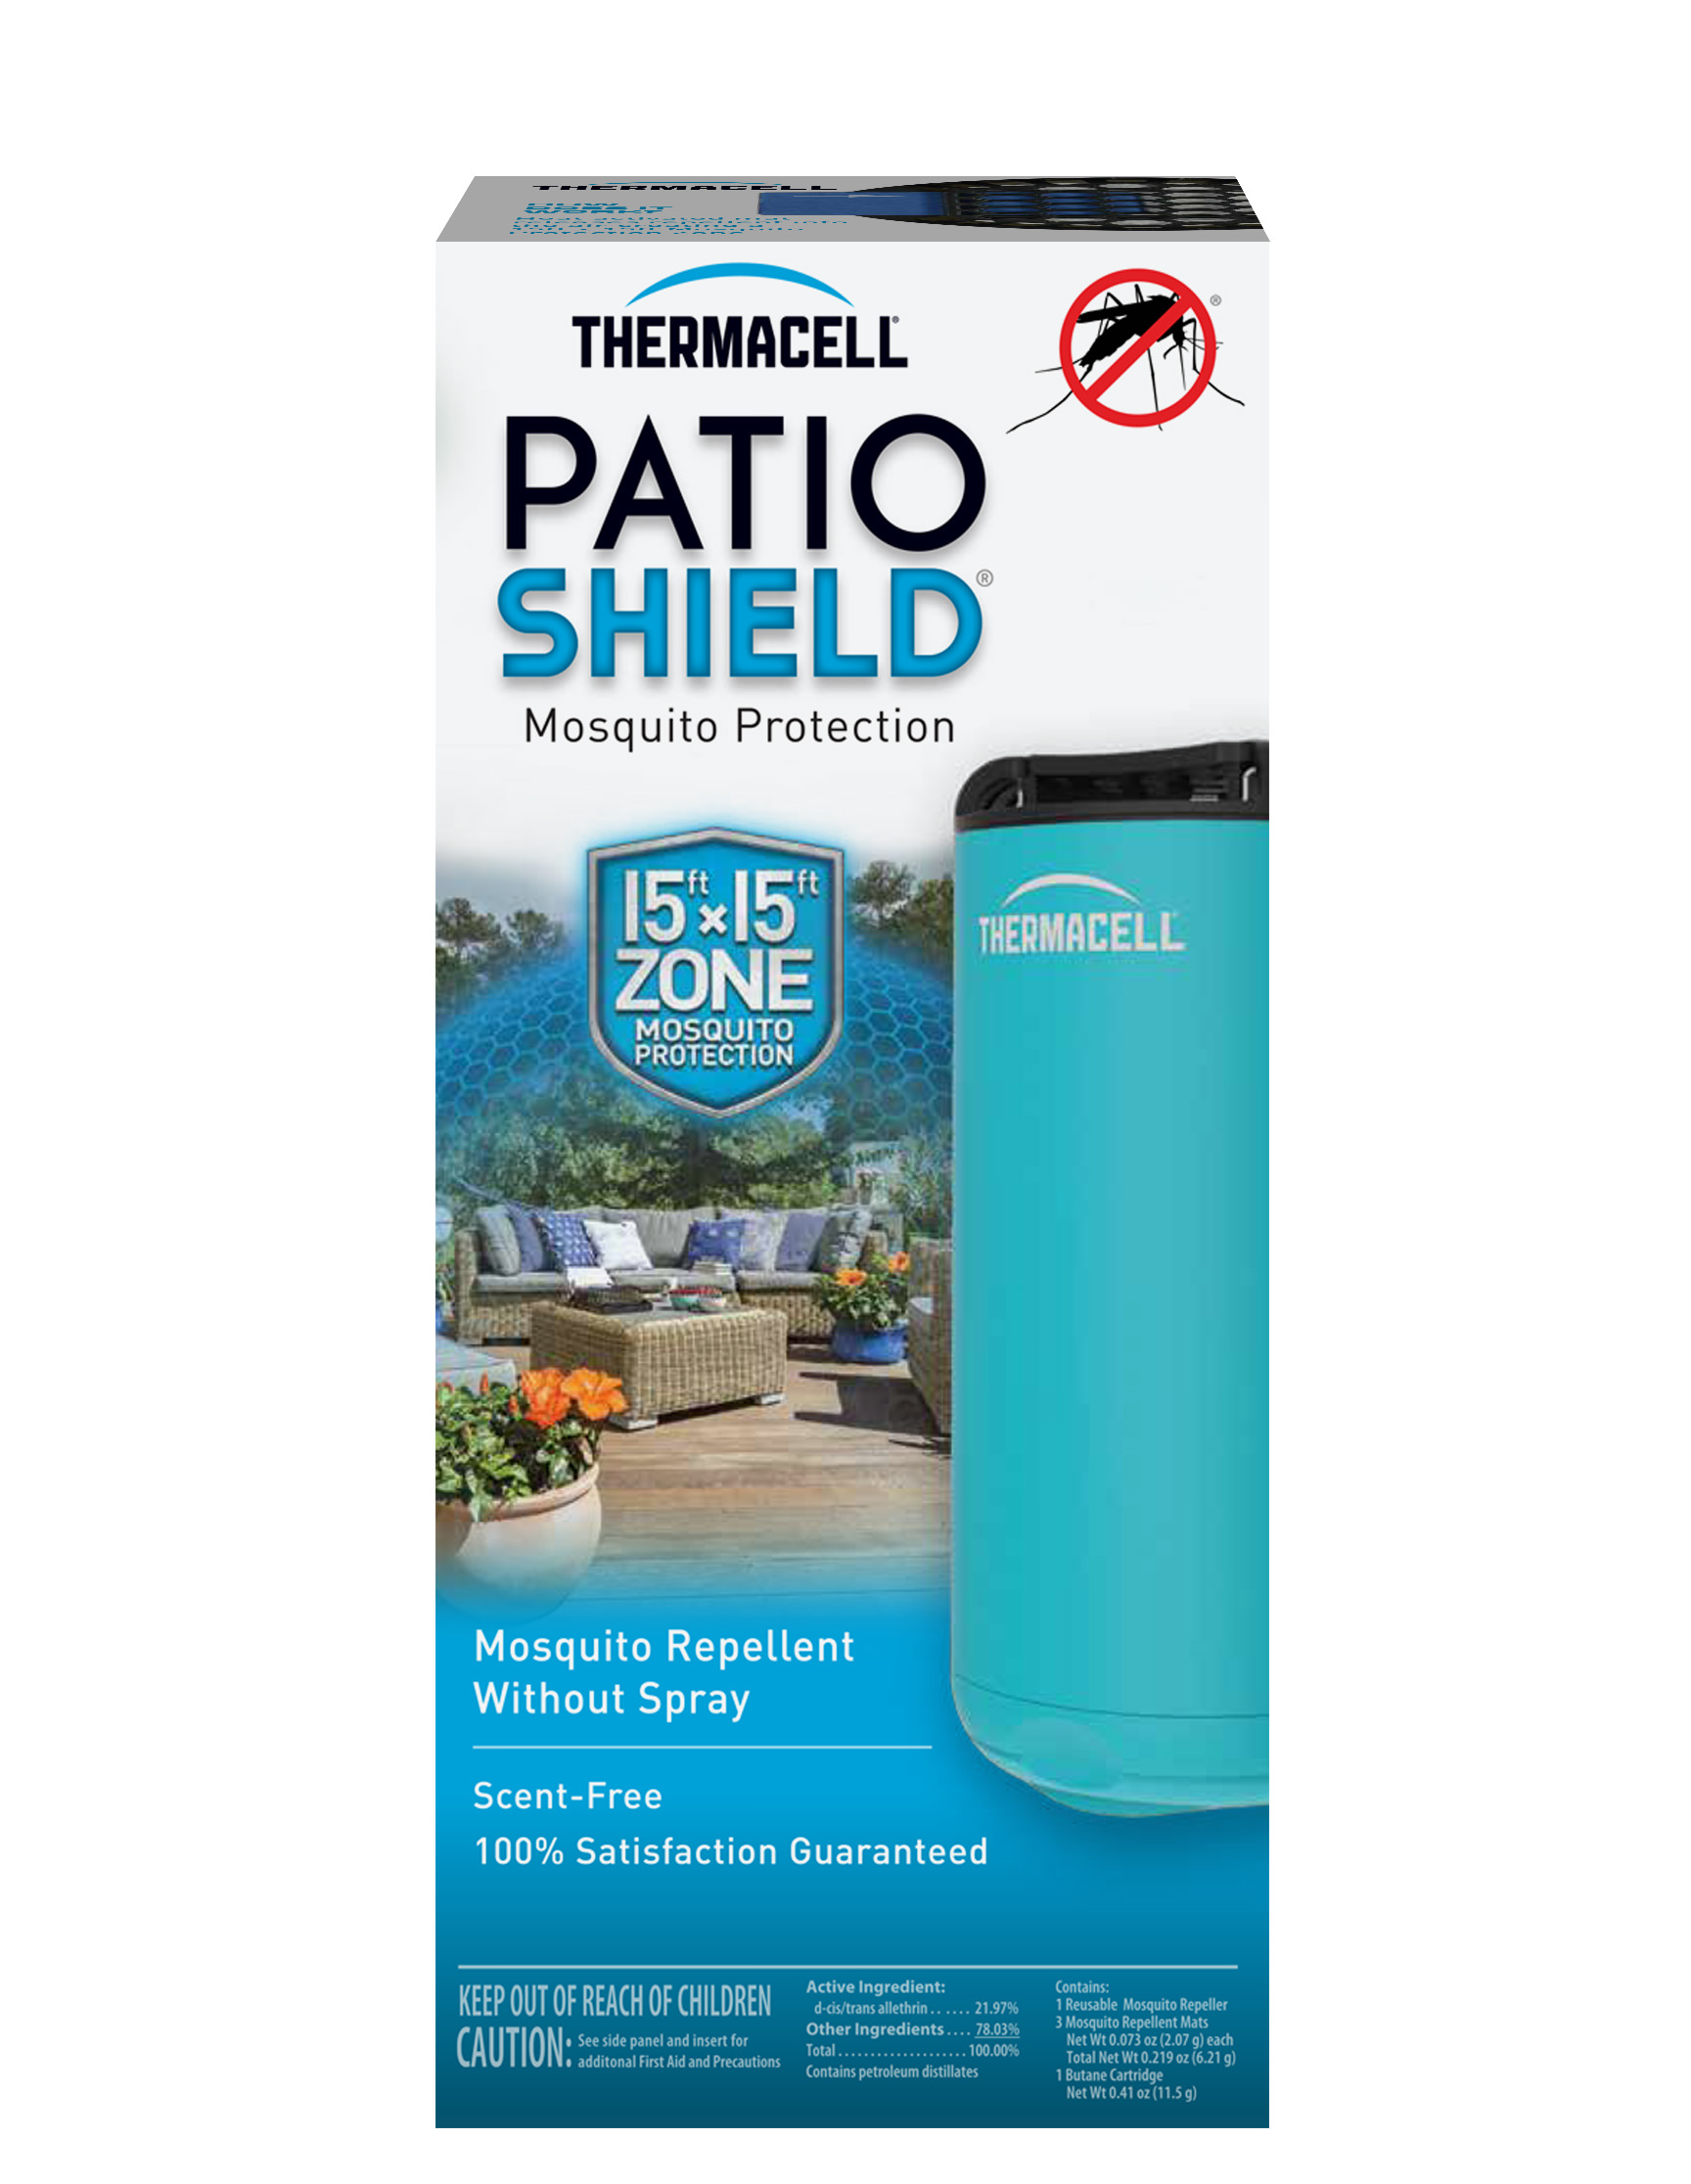 Thermacell Patio Shield Mosquito Repeller, Blue by Thermacell Repellents, Inc.